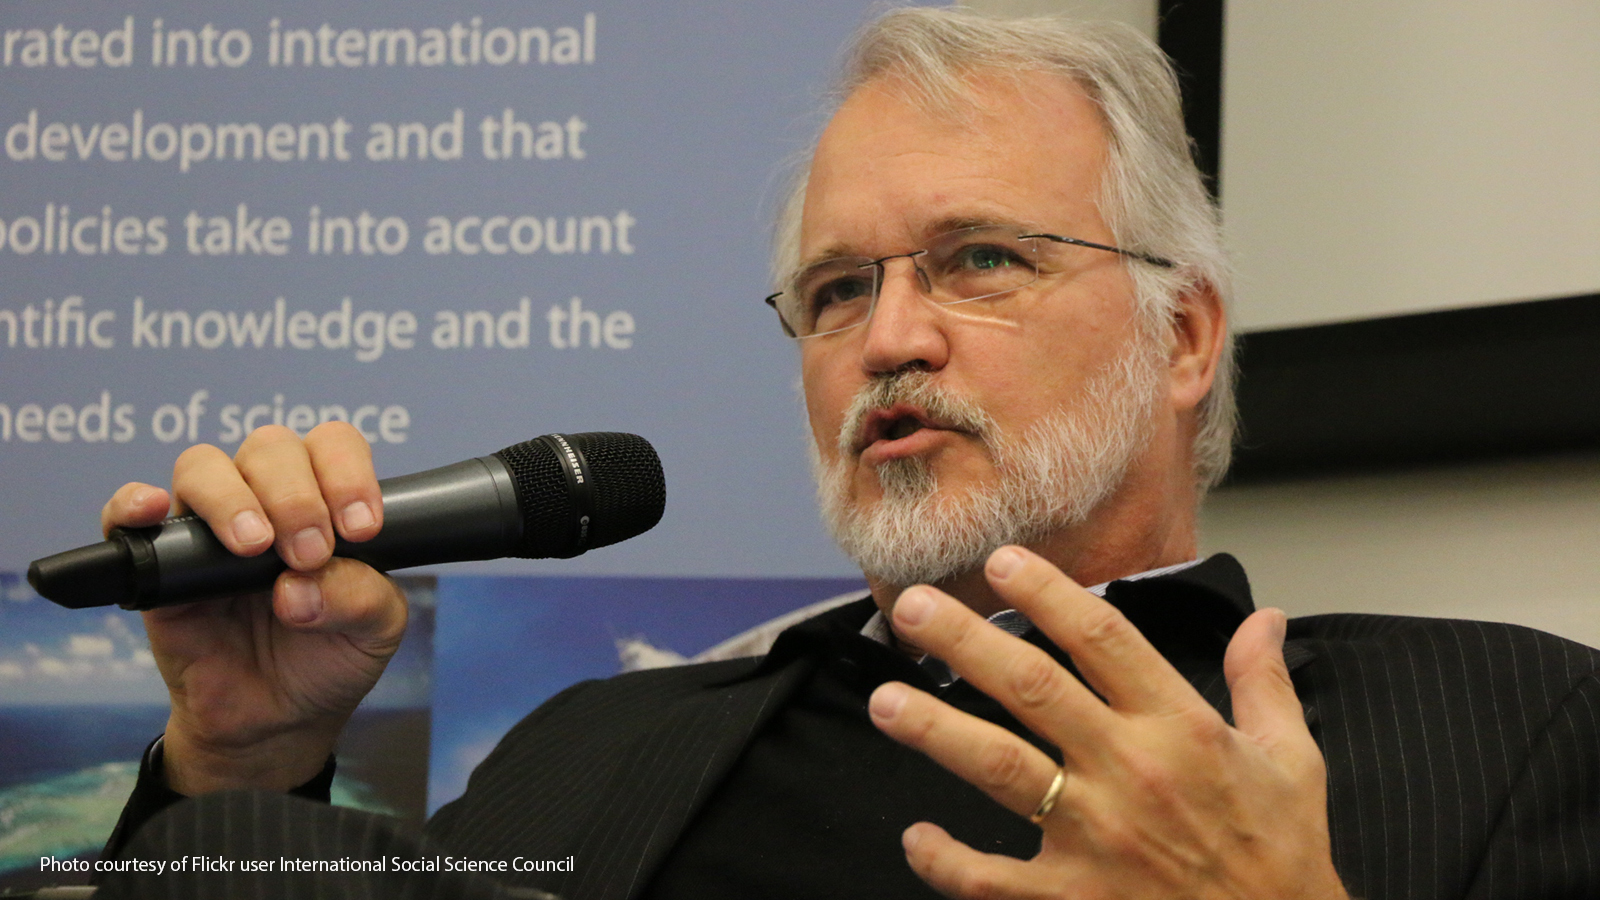 Craig Calhoun speaking at a strategy workshop in 2017.